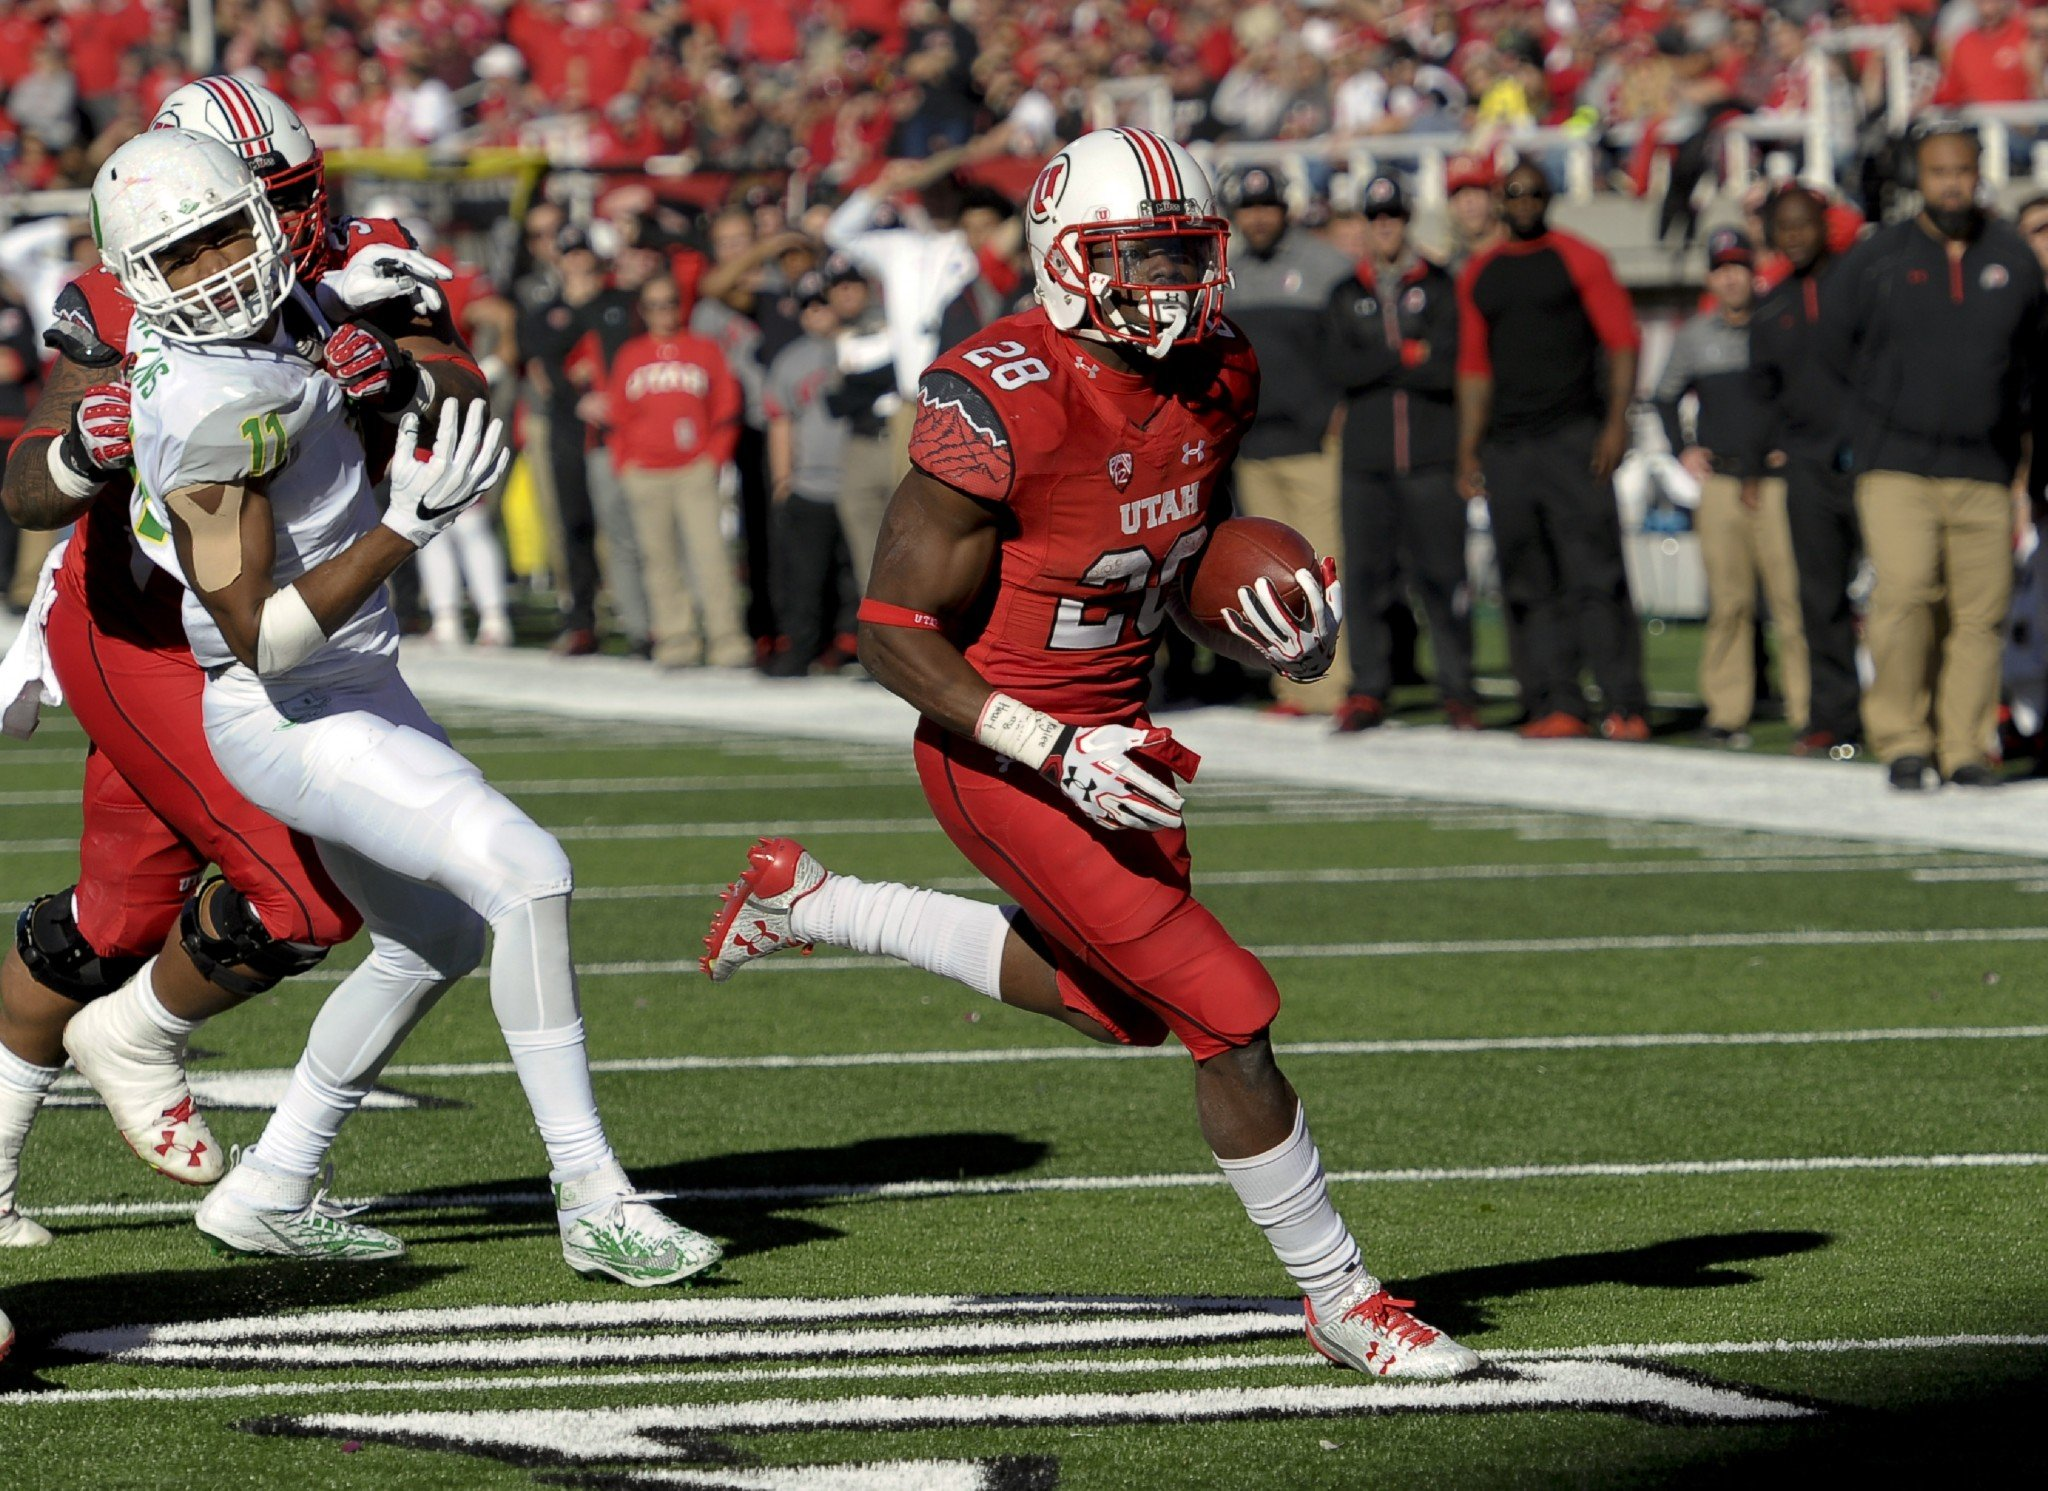 Utah RB Joe Williams averages over 6 yards a carry. (Getty)